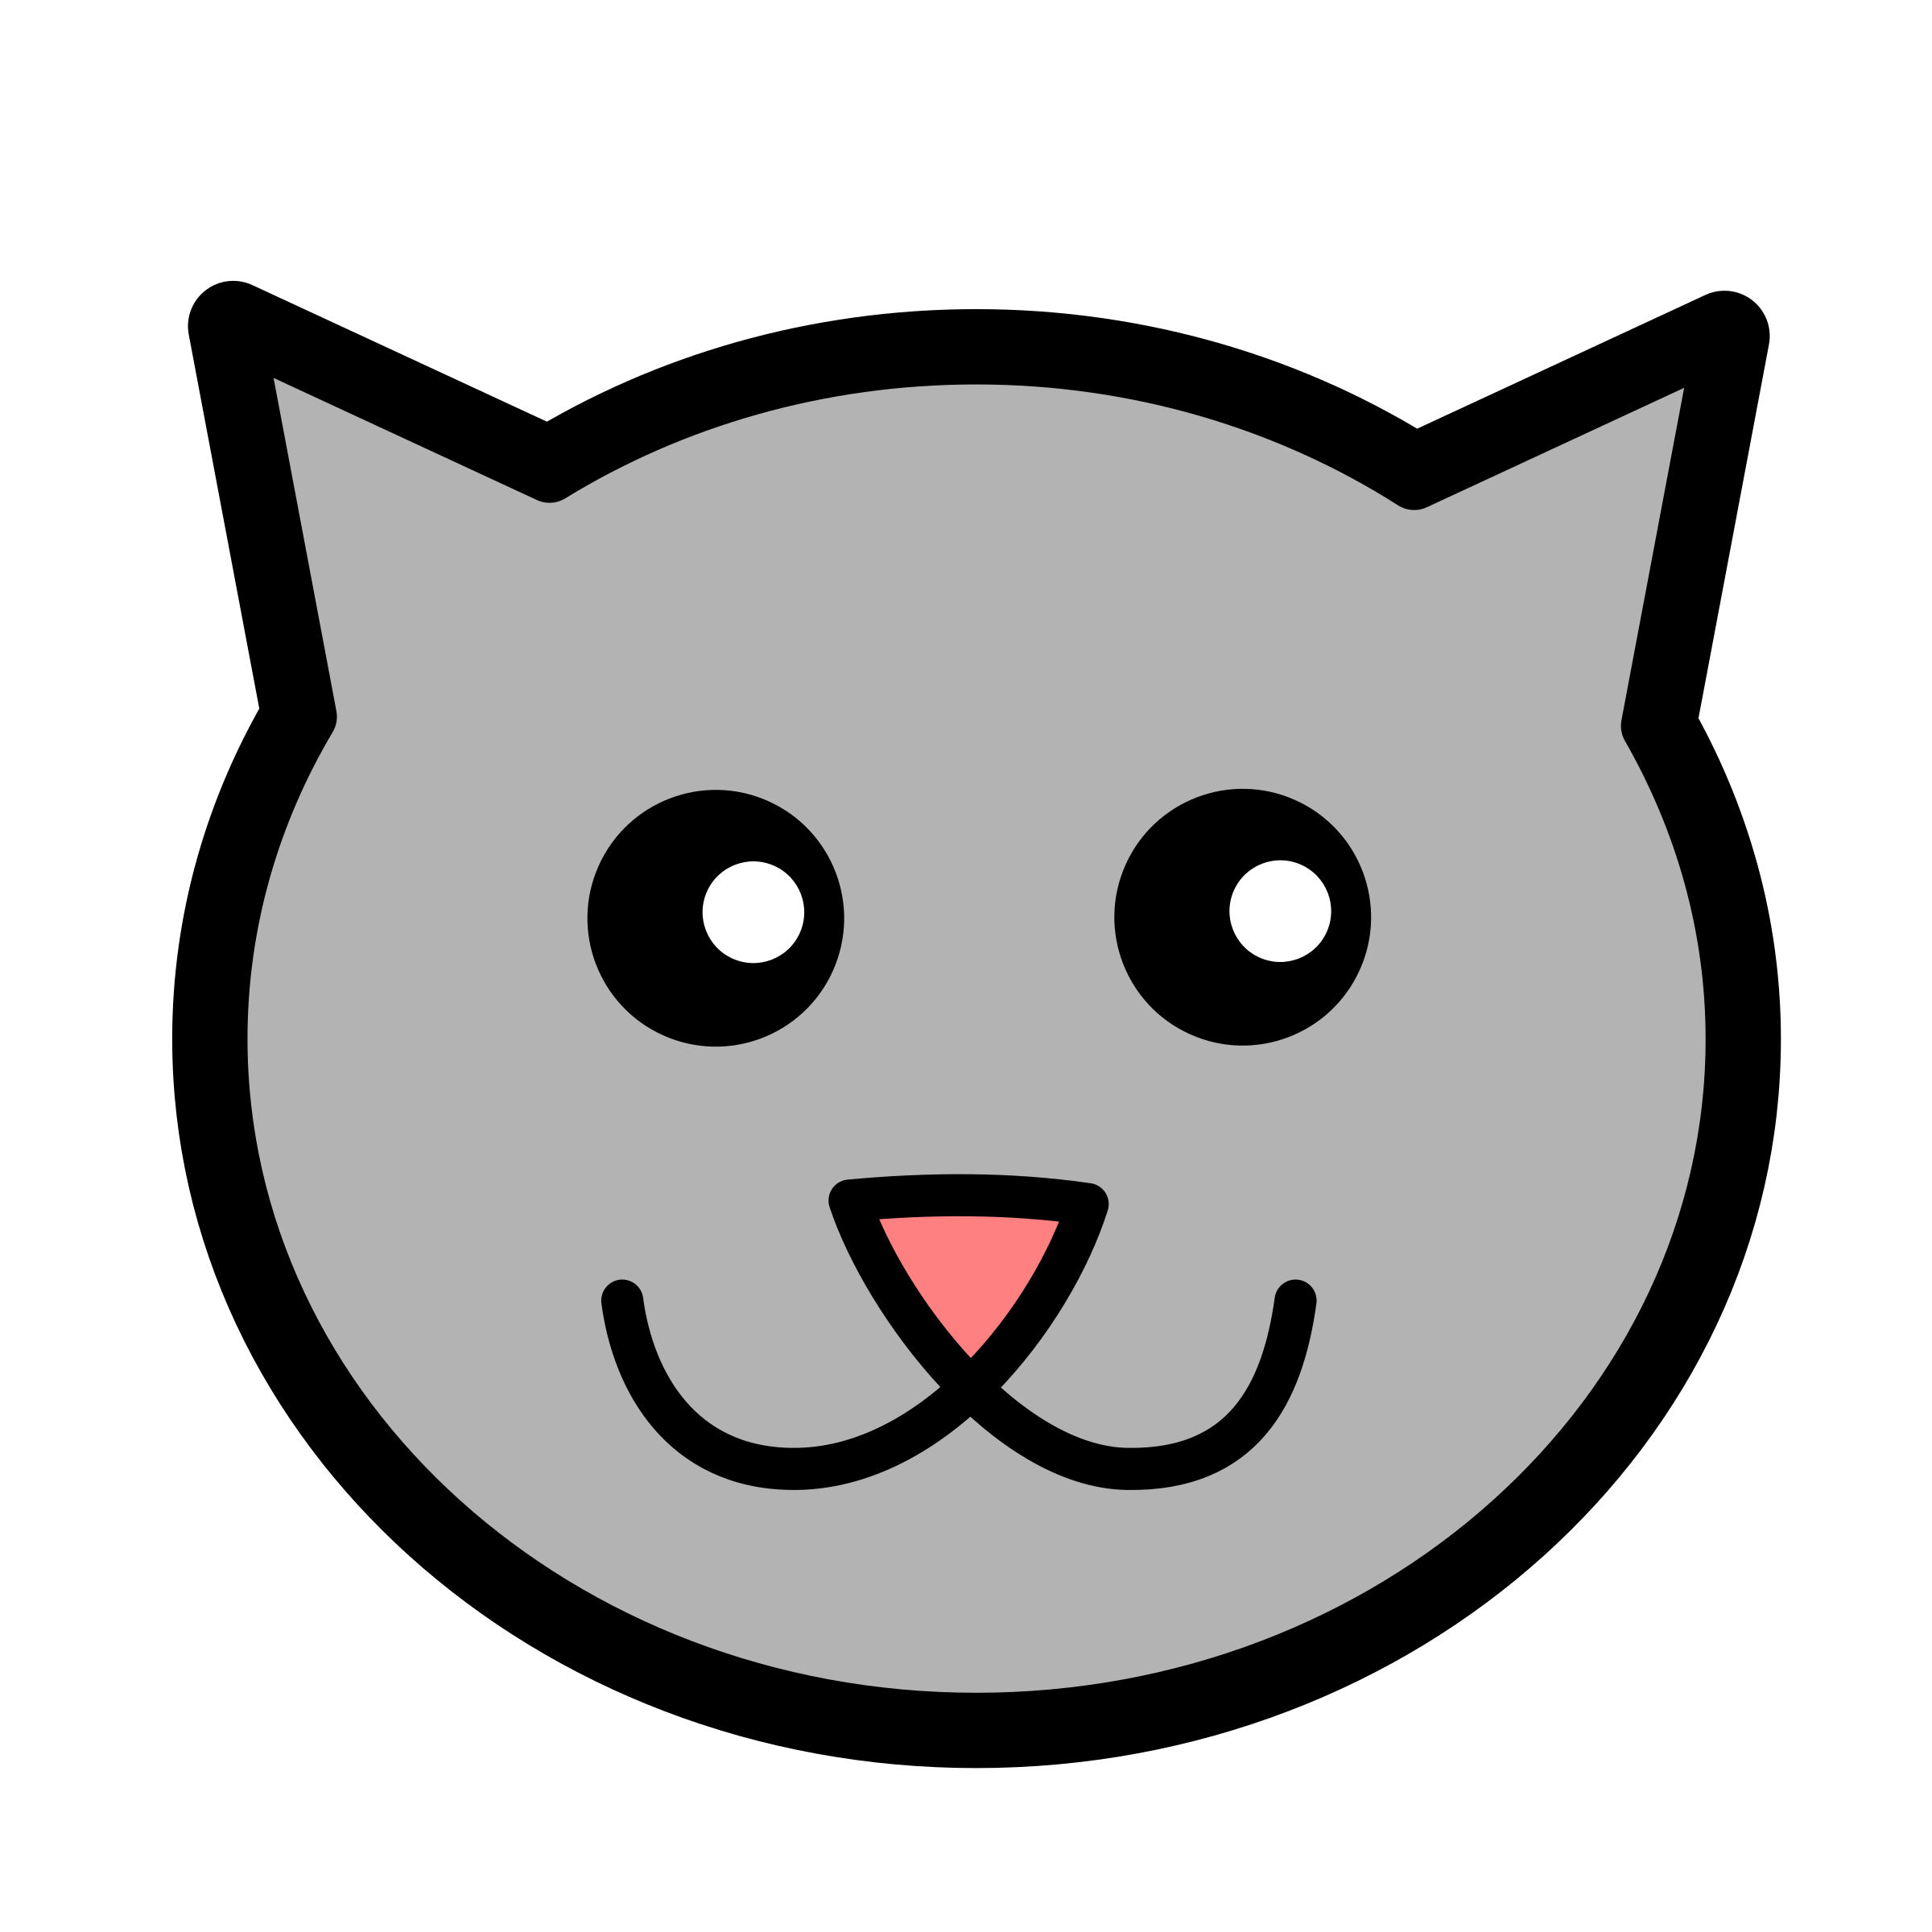 Kitty icon by pitr